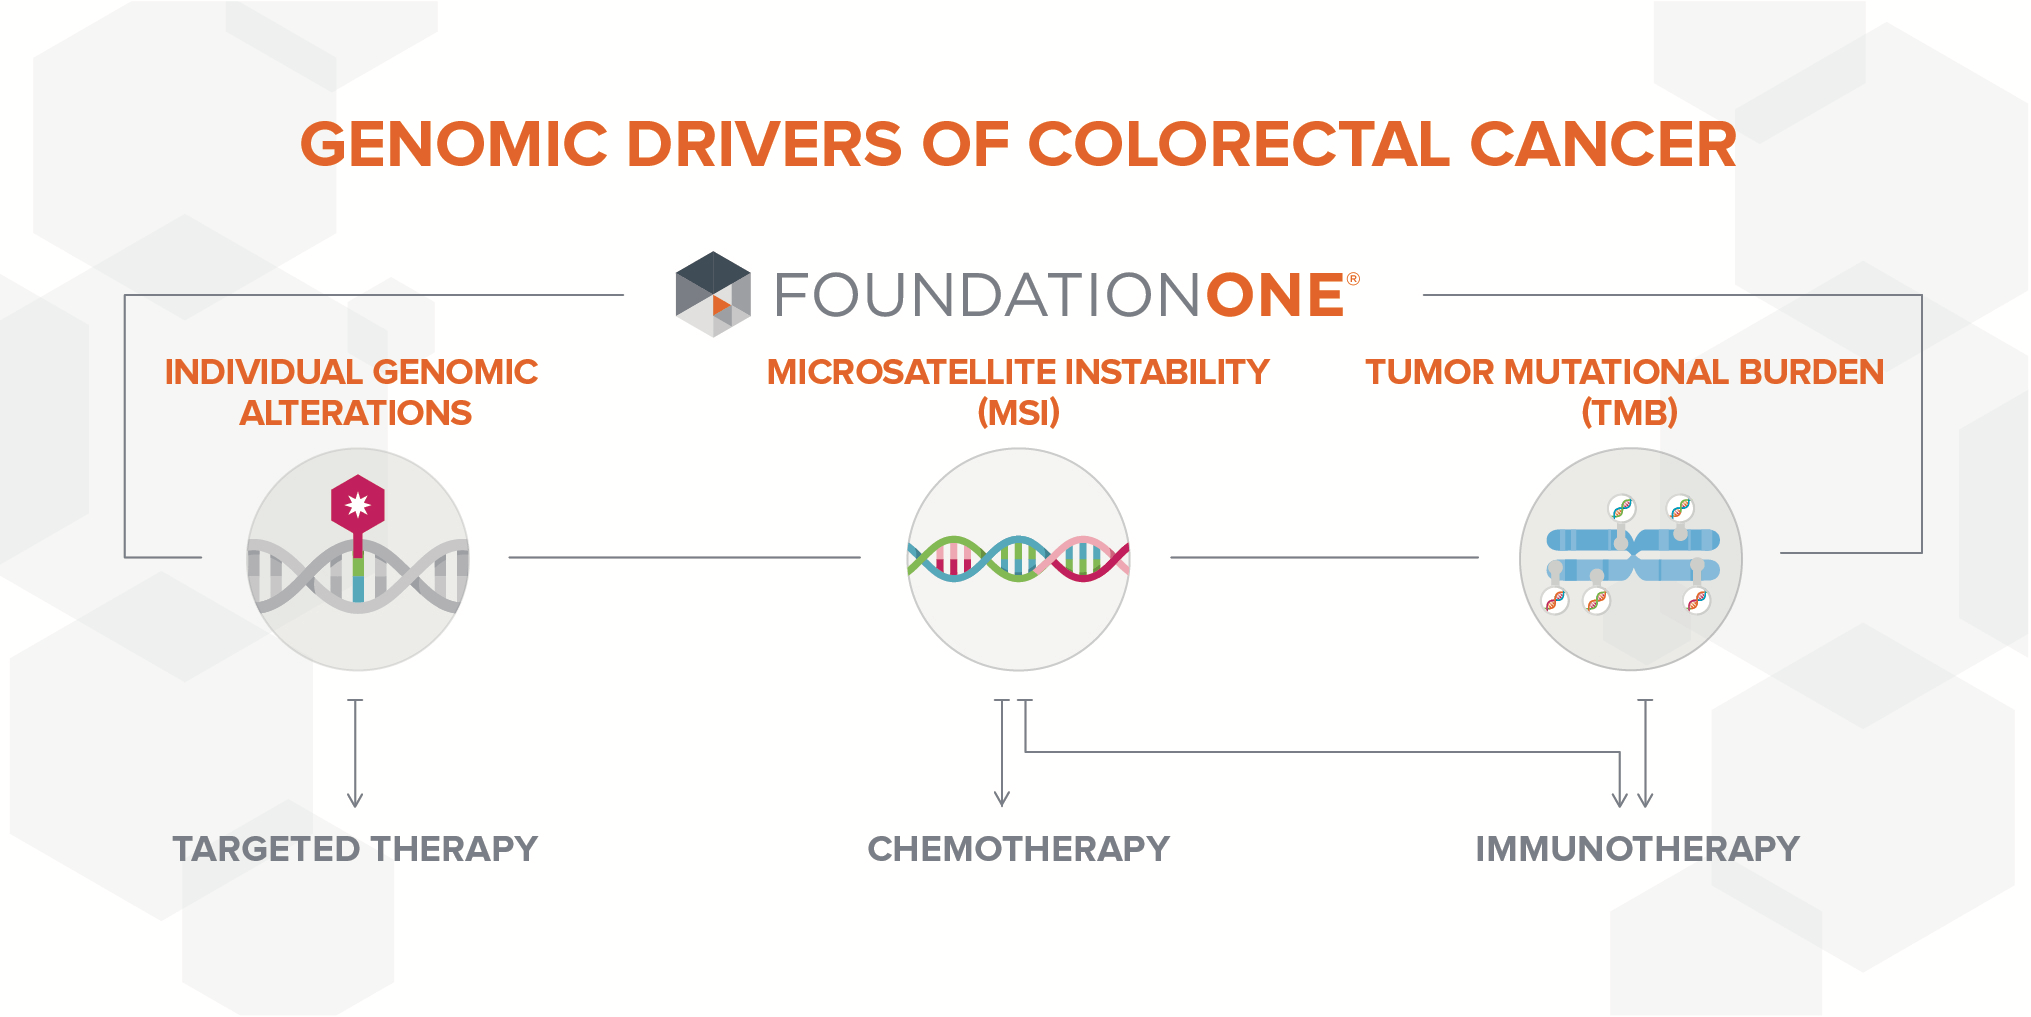 Genomic Drivers of Colorectal Cancer